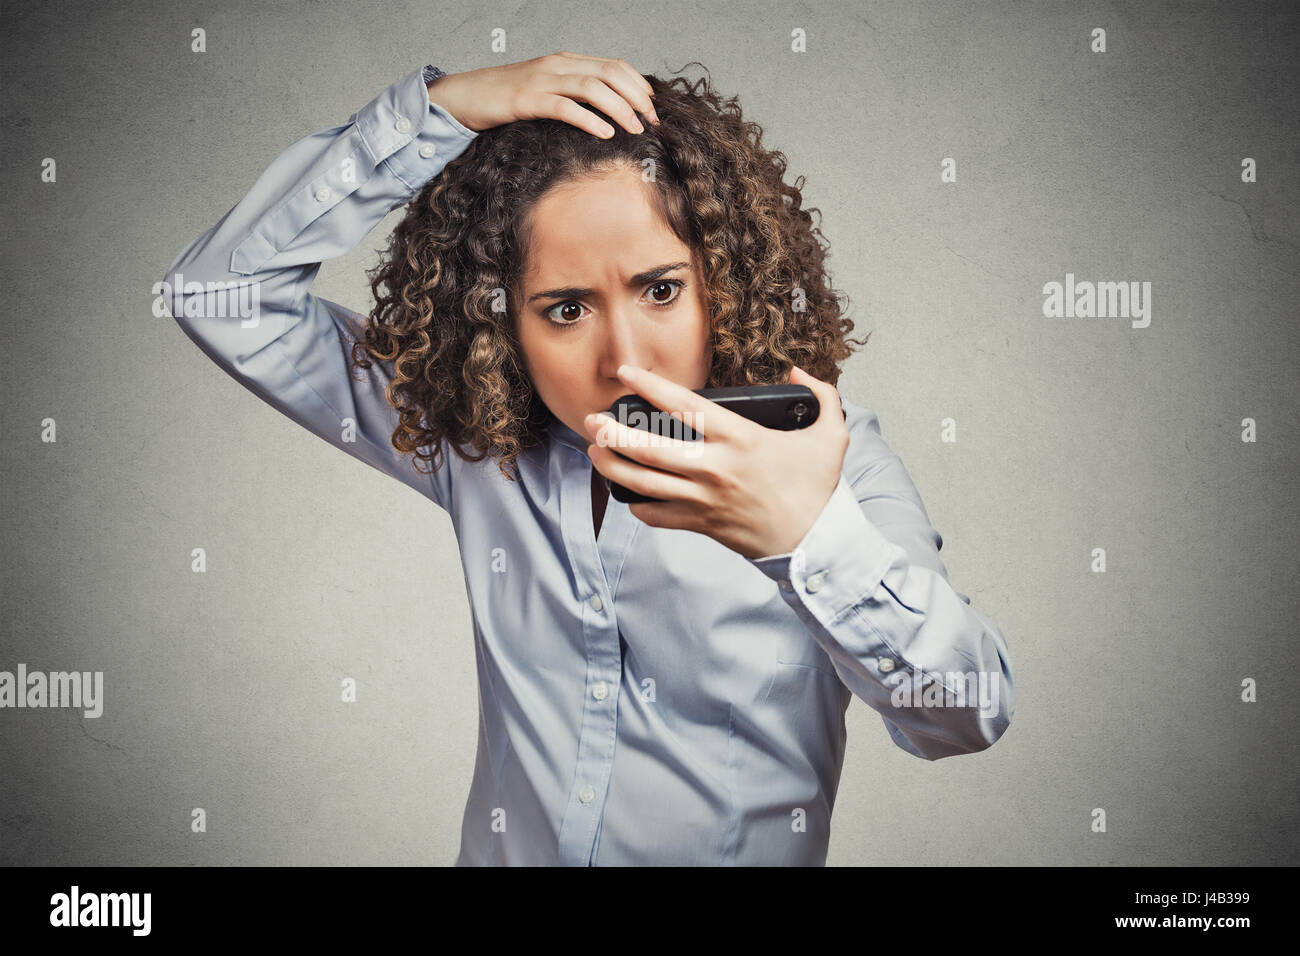 Closeup portrait shocked funny looking young woman, feeling head, surprised she is losing hair has receding hairline Stock Photo